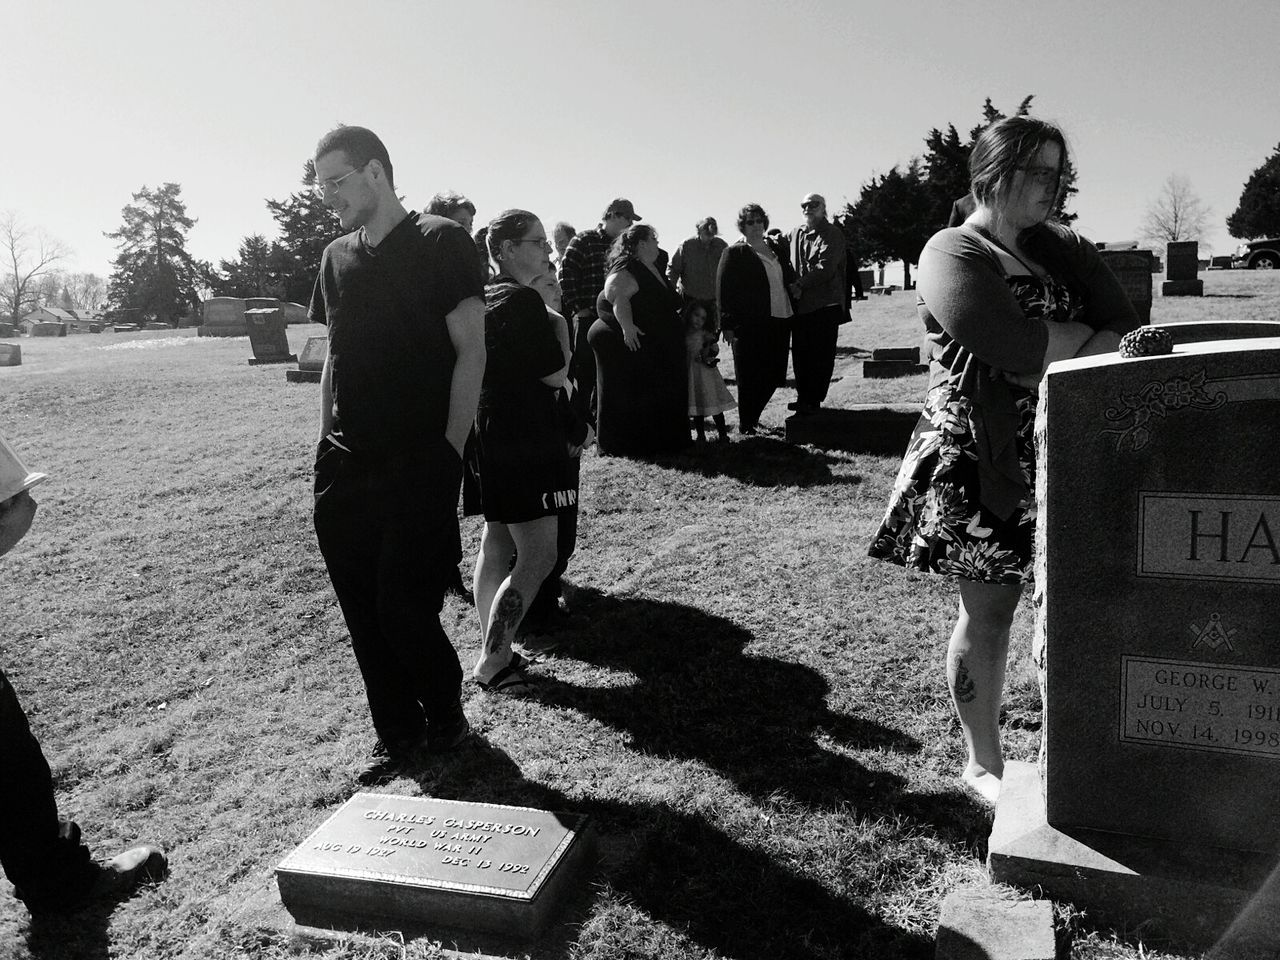 Funeral Ceremony Family Death And Life Graveyard Shots Gravestones Death Life And Death Life's Journey  Life Black & White Black And White Black And White Photography Black&white Grave Yard Graveside Gravesite